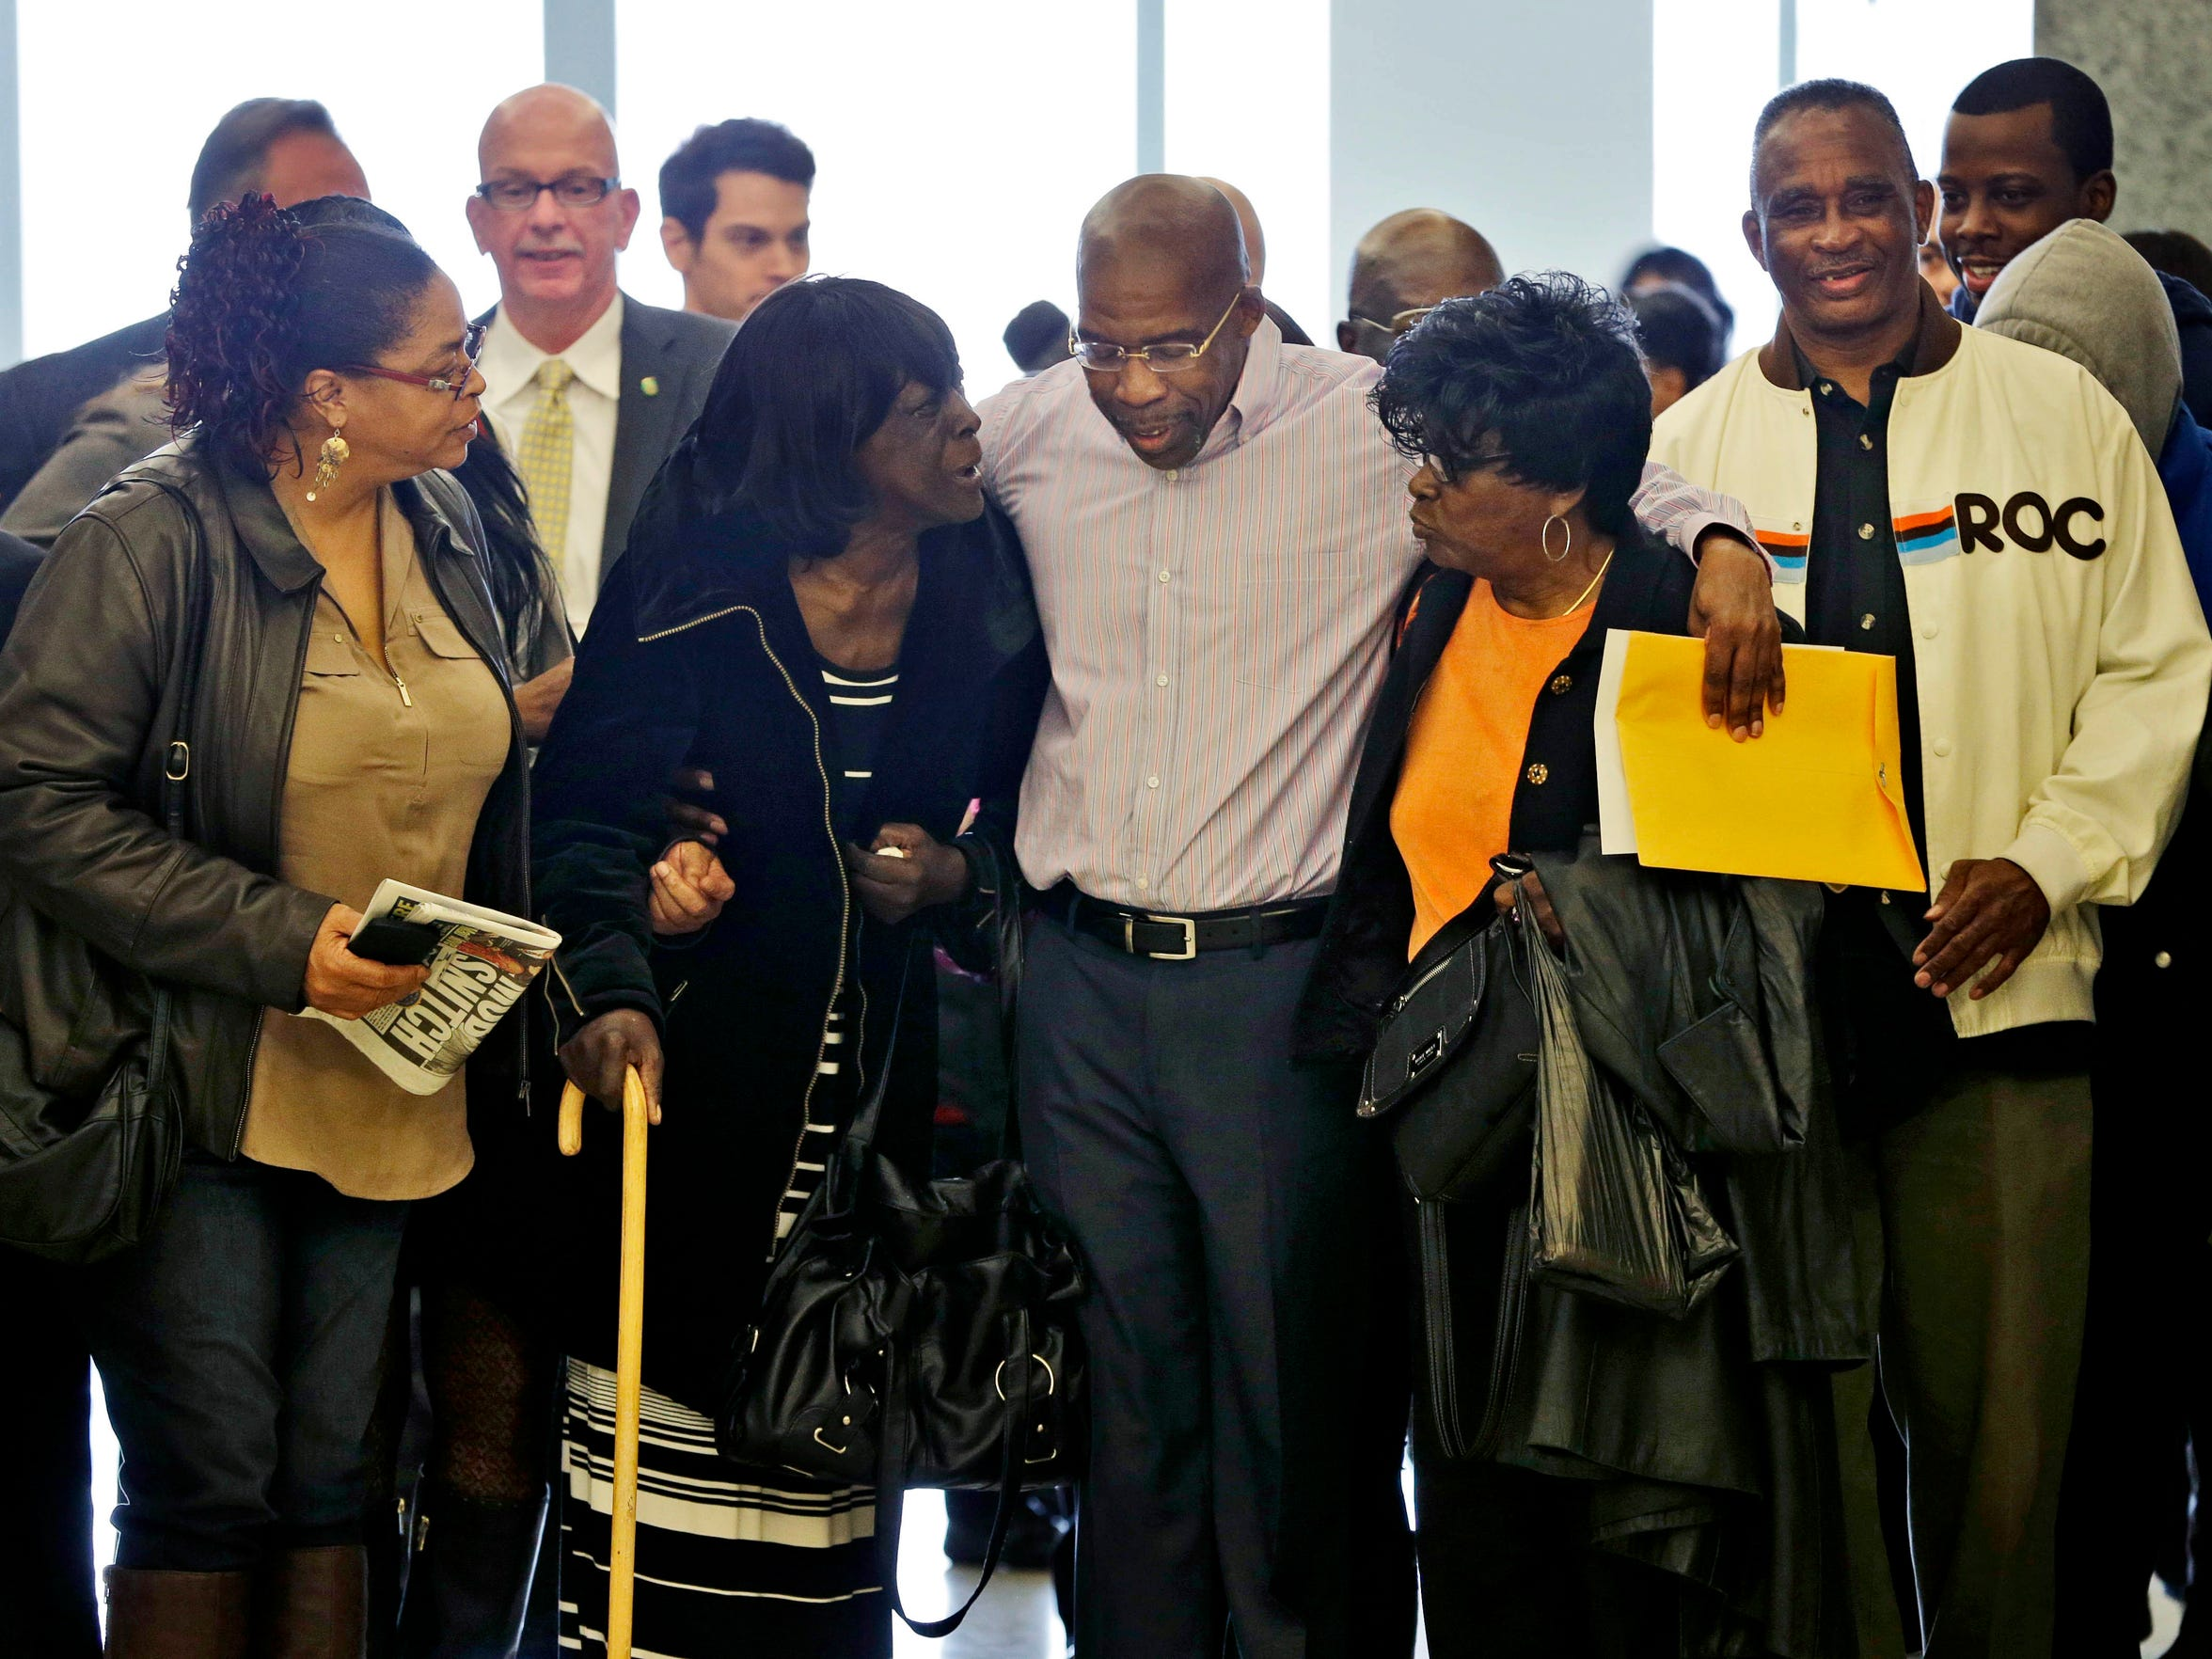 Jonathan Fleming, center, exits the courtroom with his mother Patricia Fleming, second from left, and other family and friends in New York on April 8, 2014. He spent almost a quarter-century behind bars for murder he didn't commit.